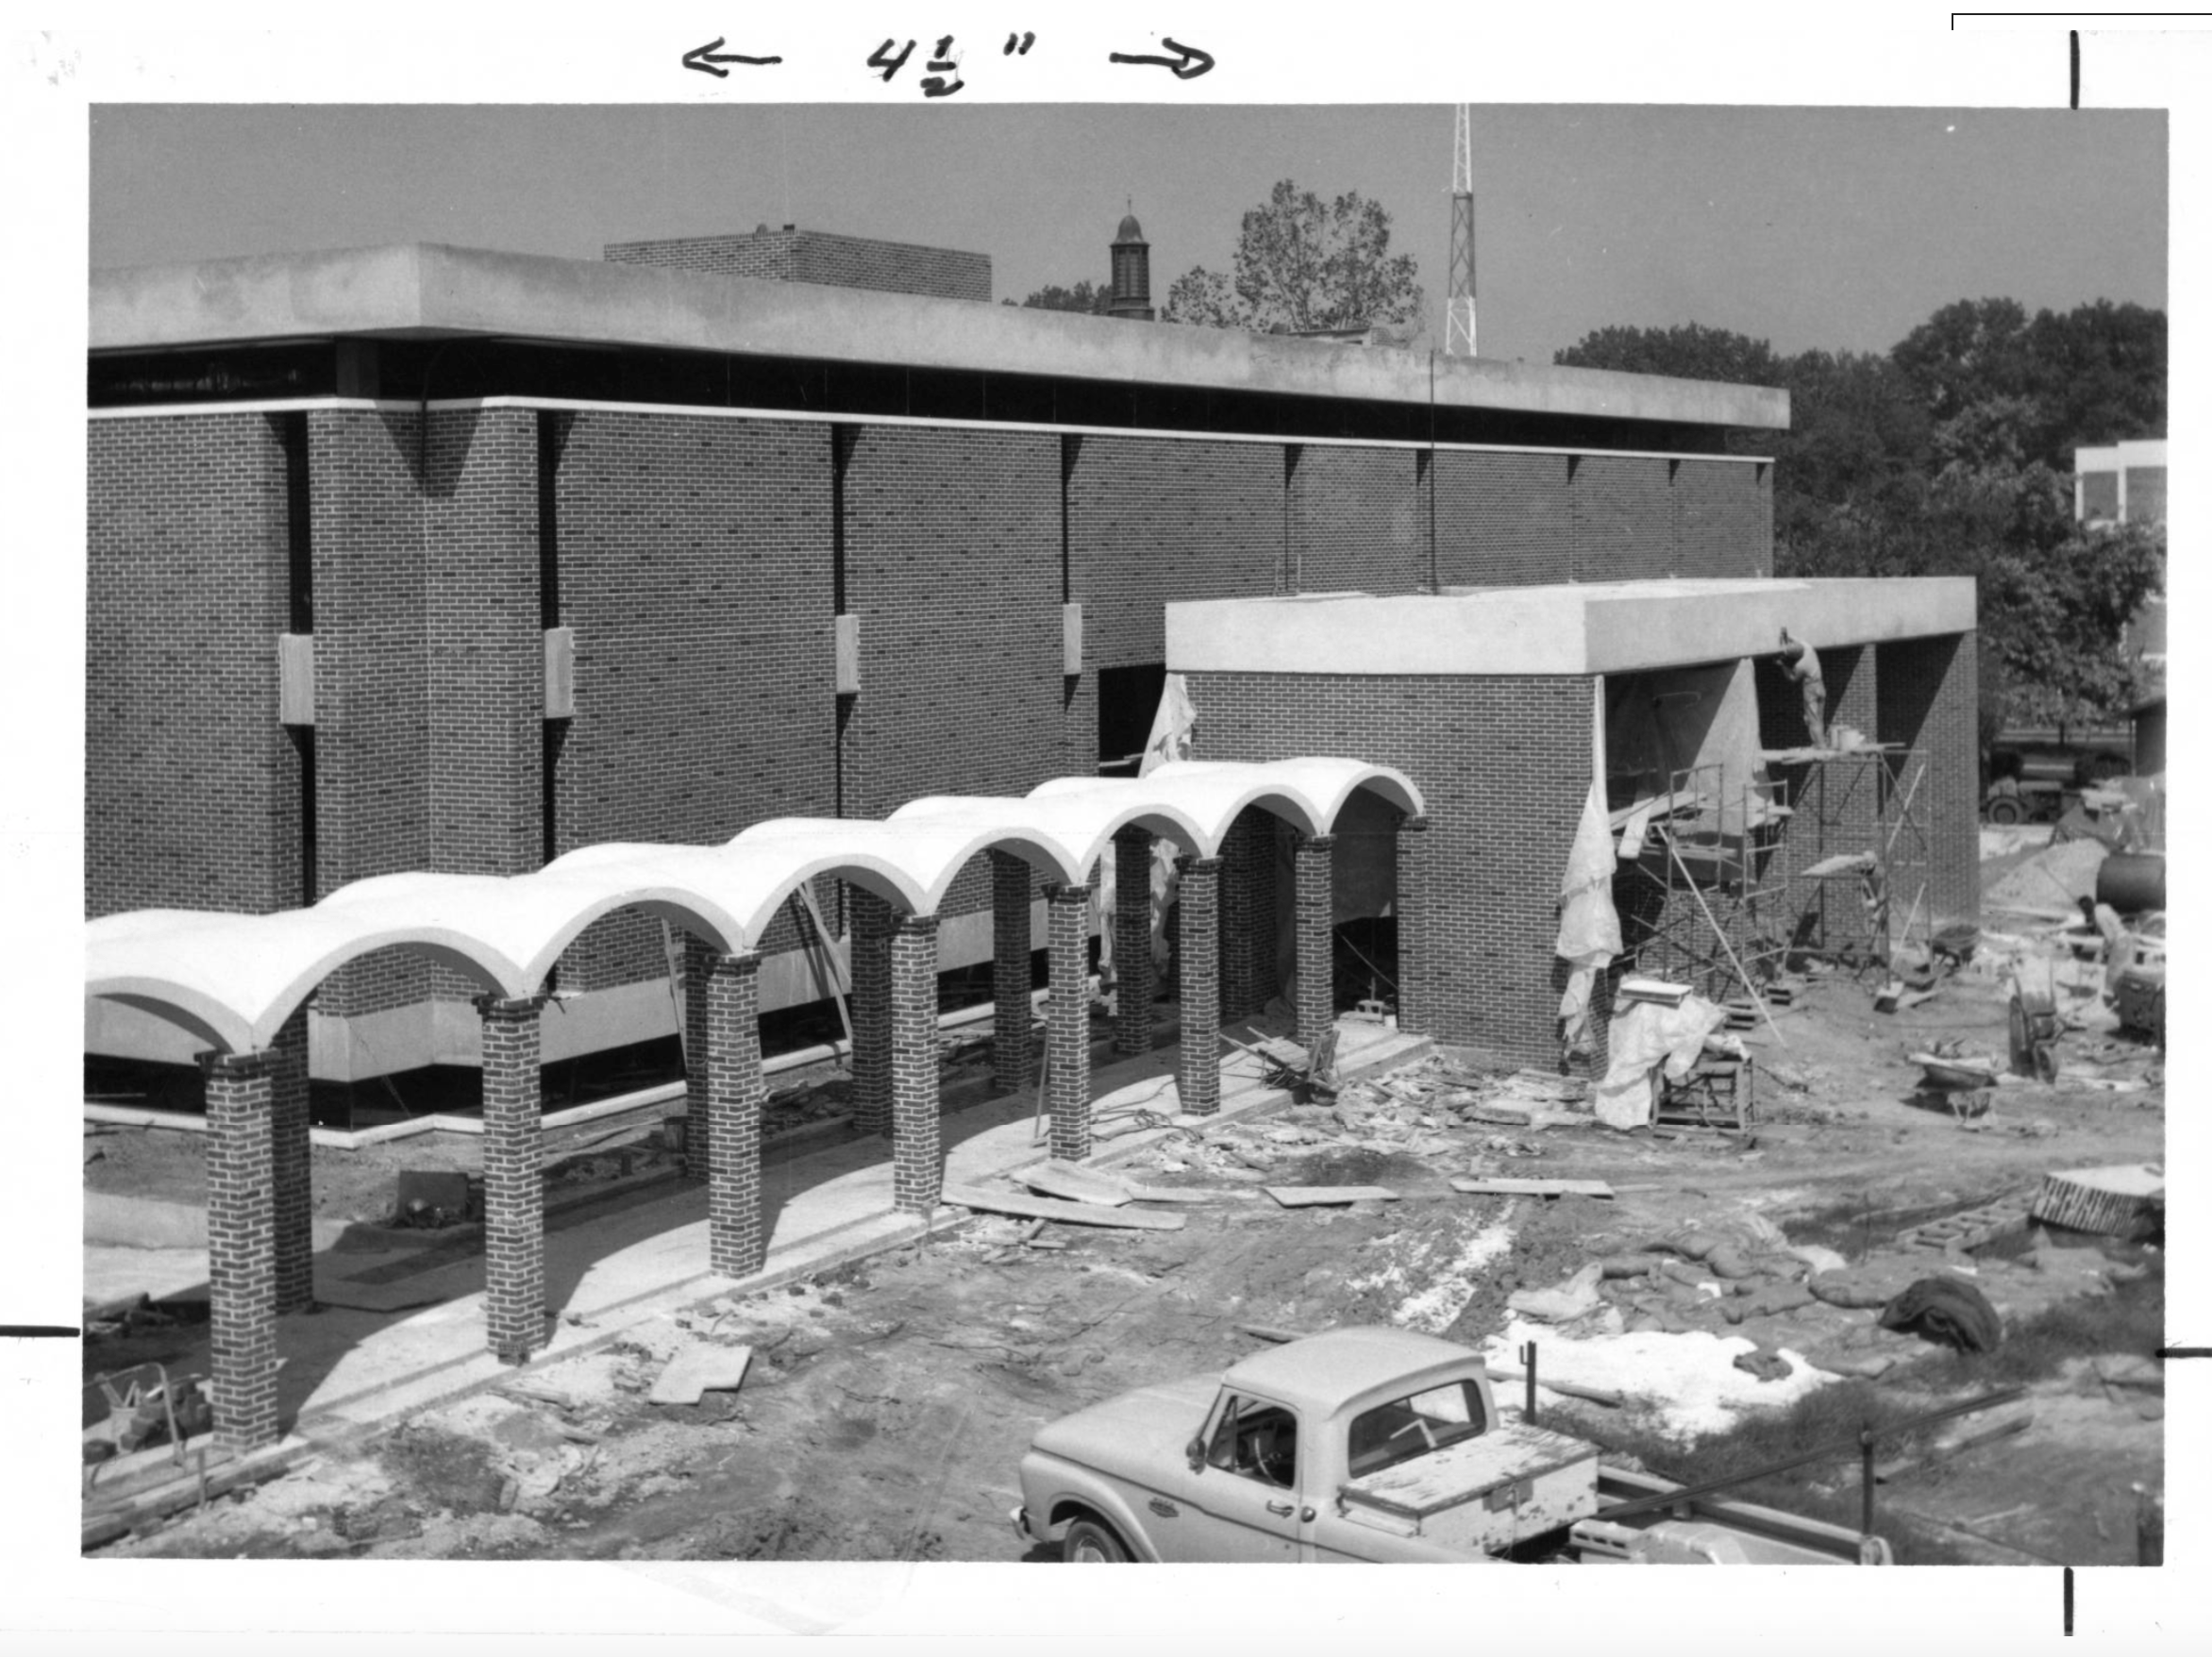 cbc-library-under-construction-1968